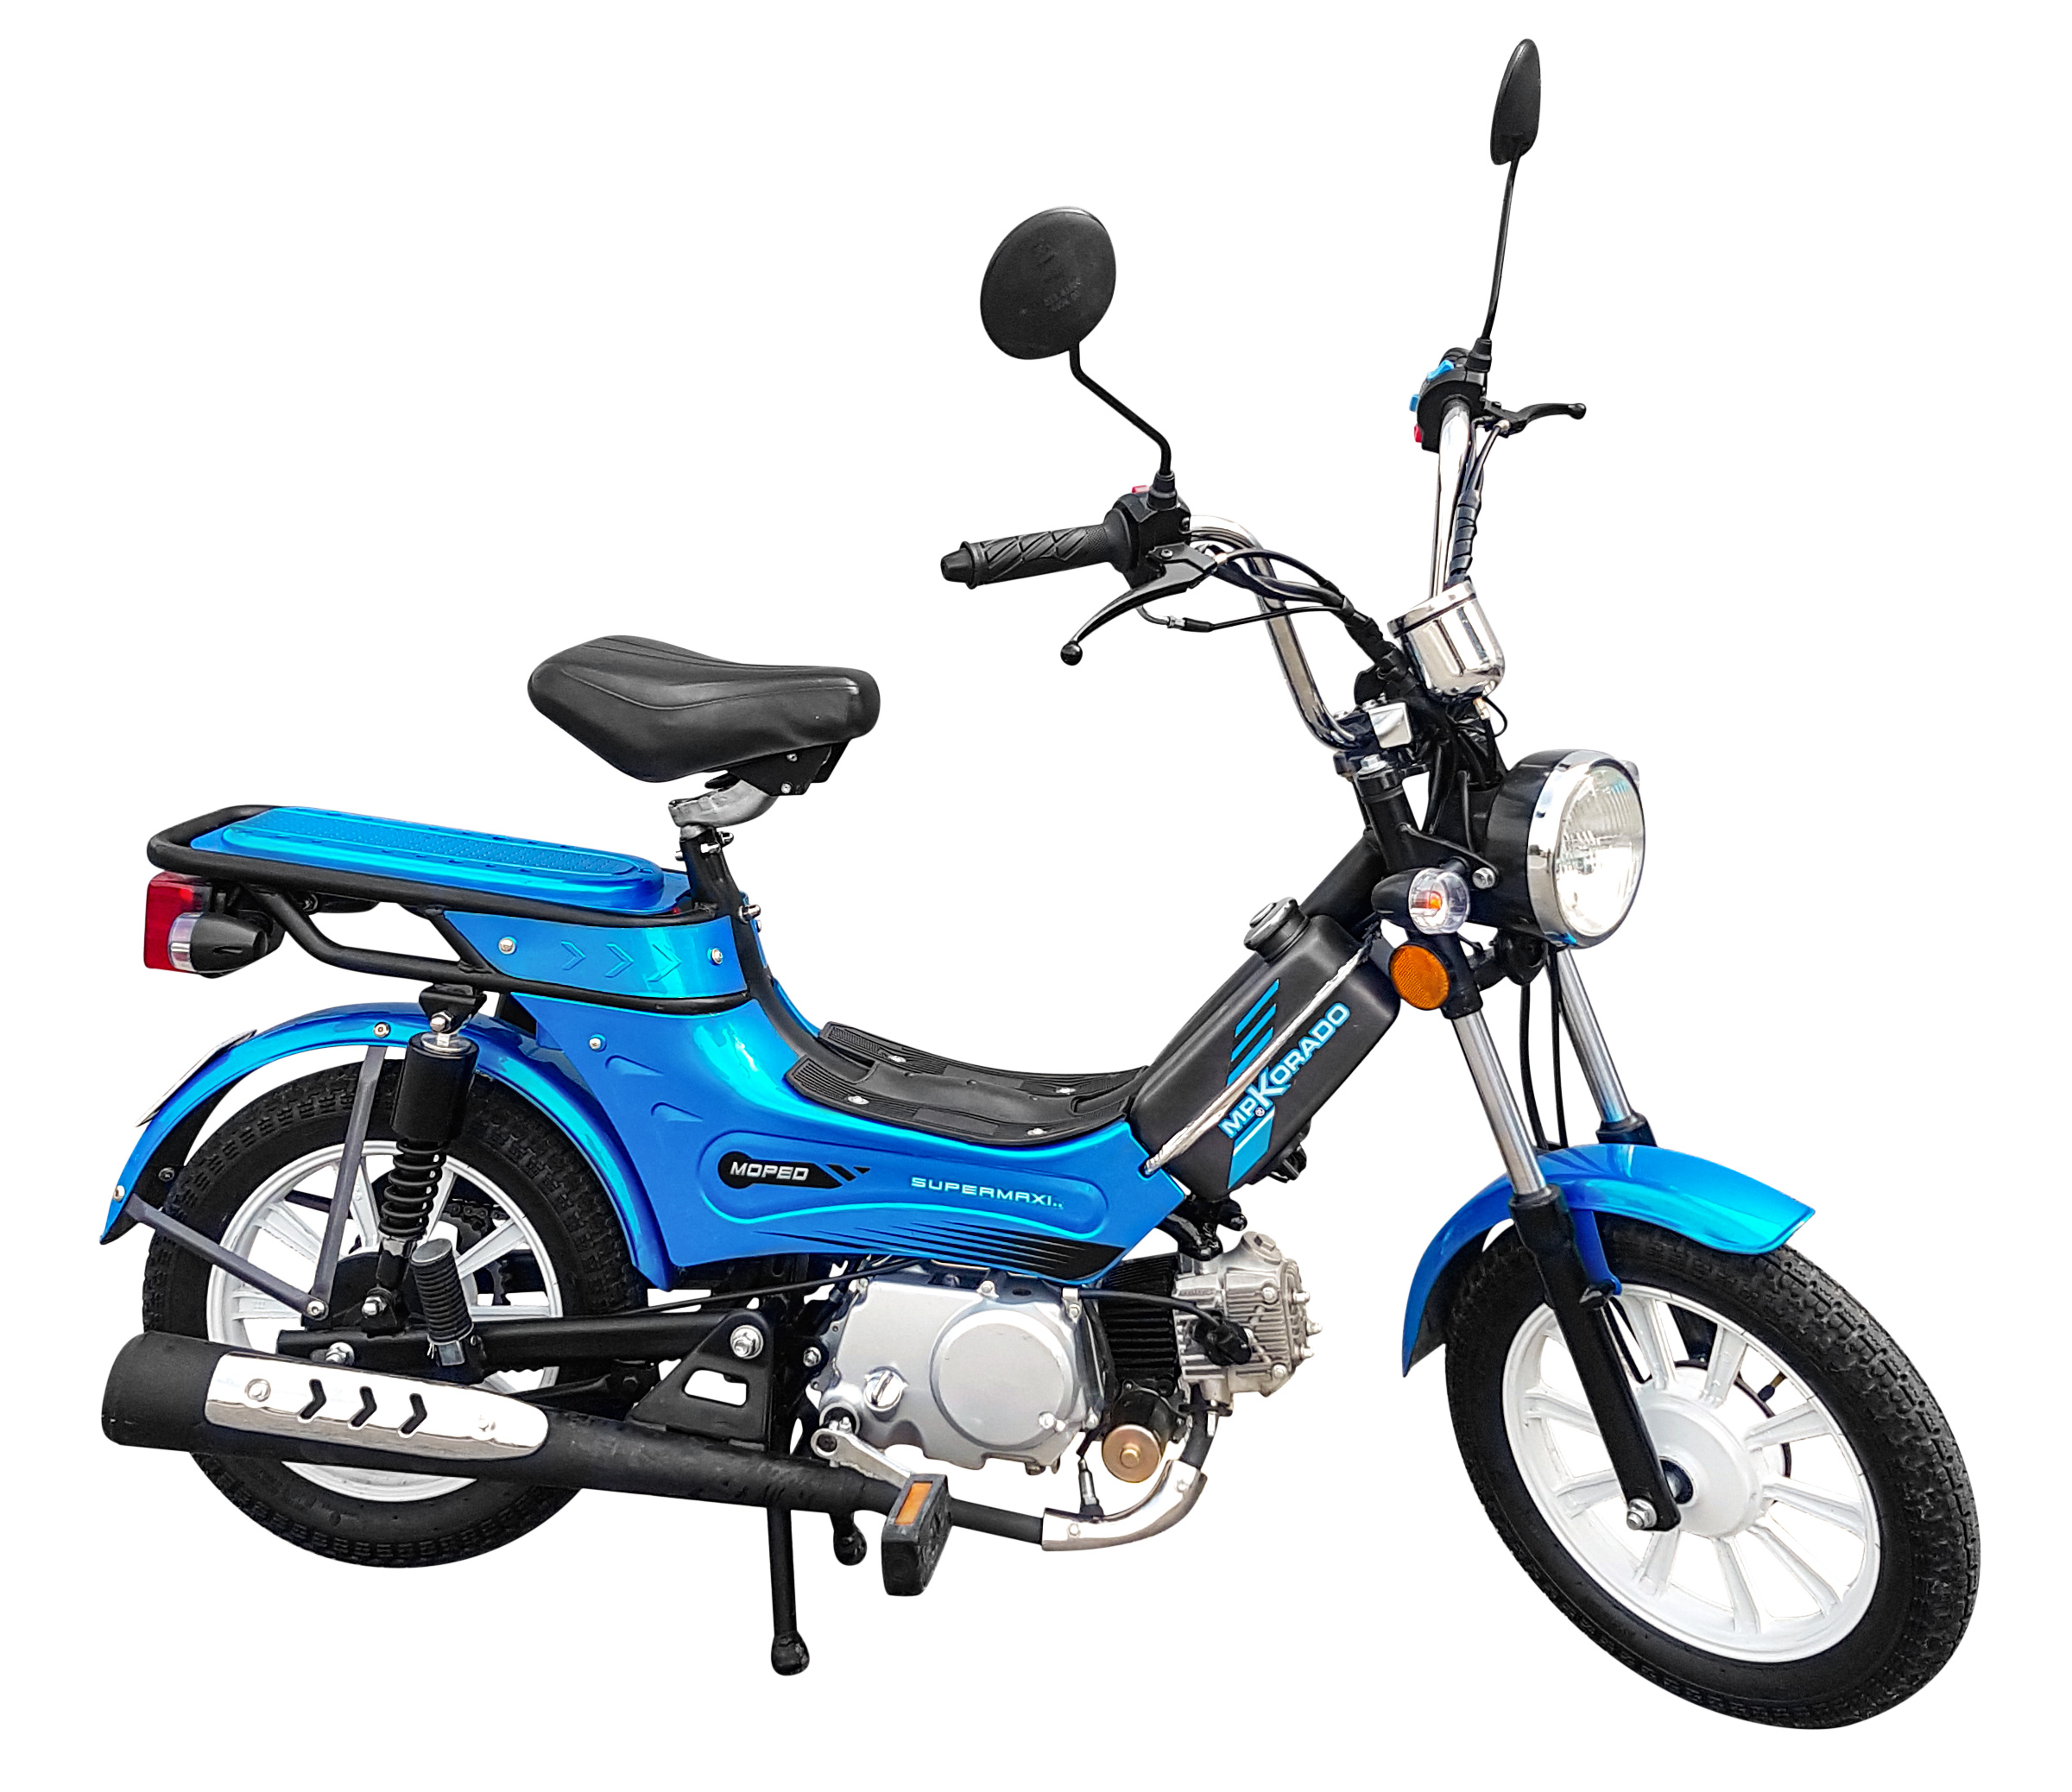 Moped-korado_2